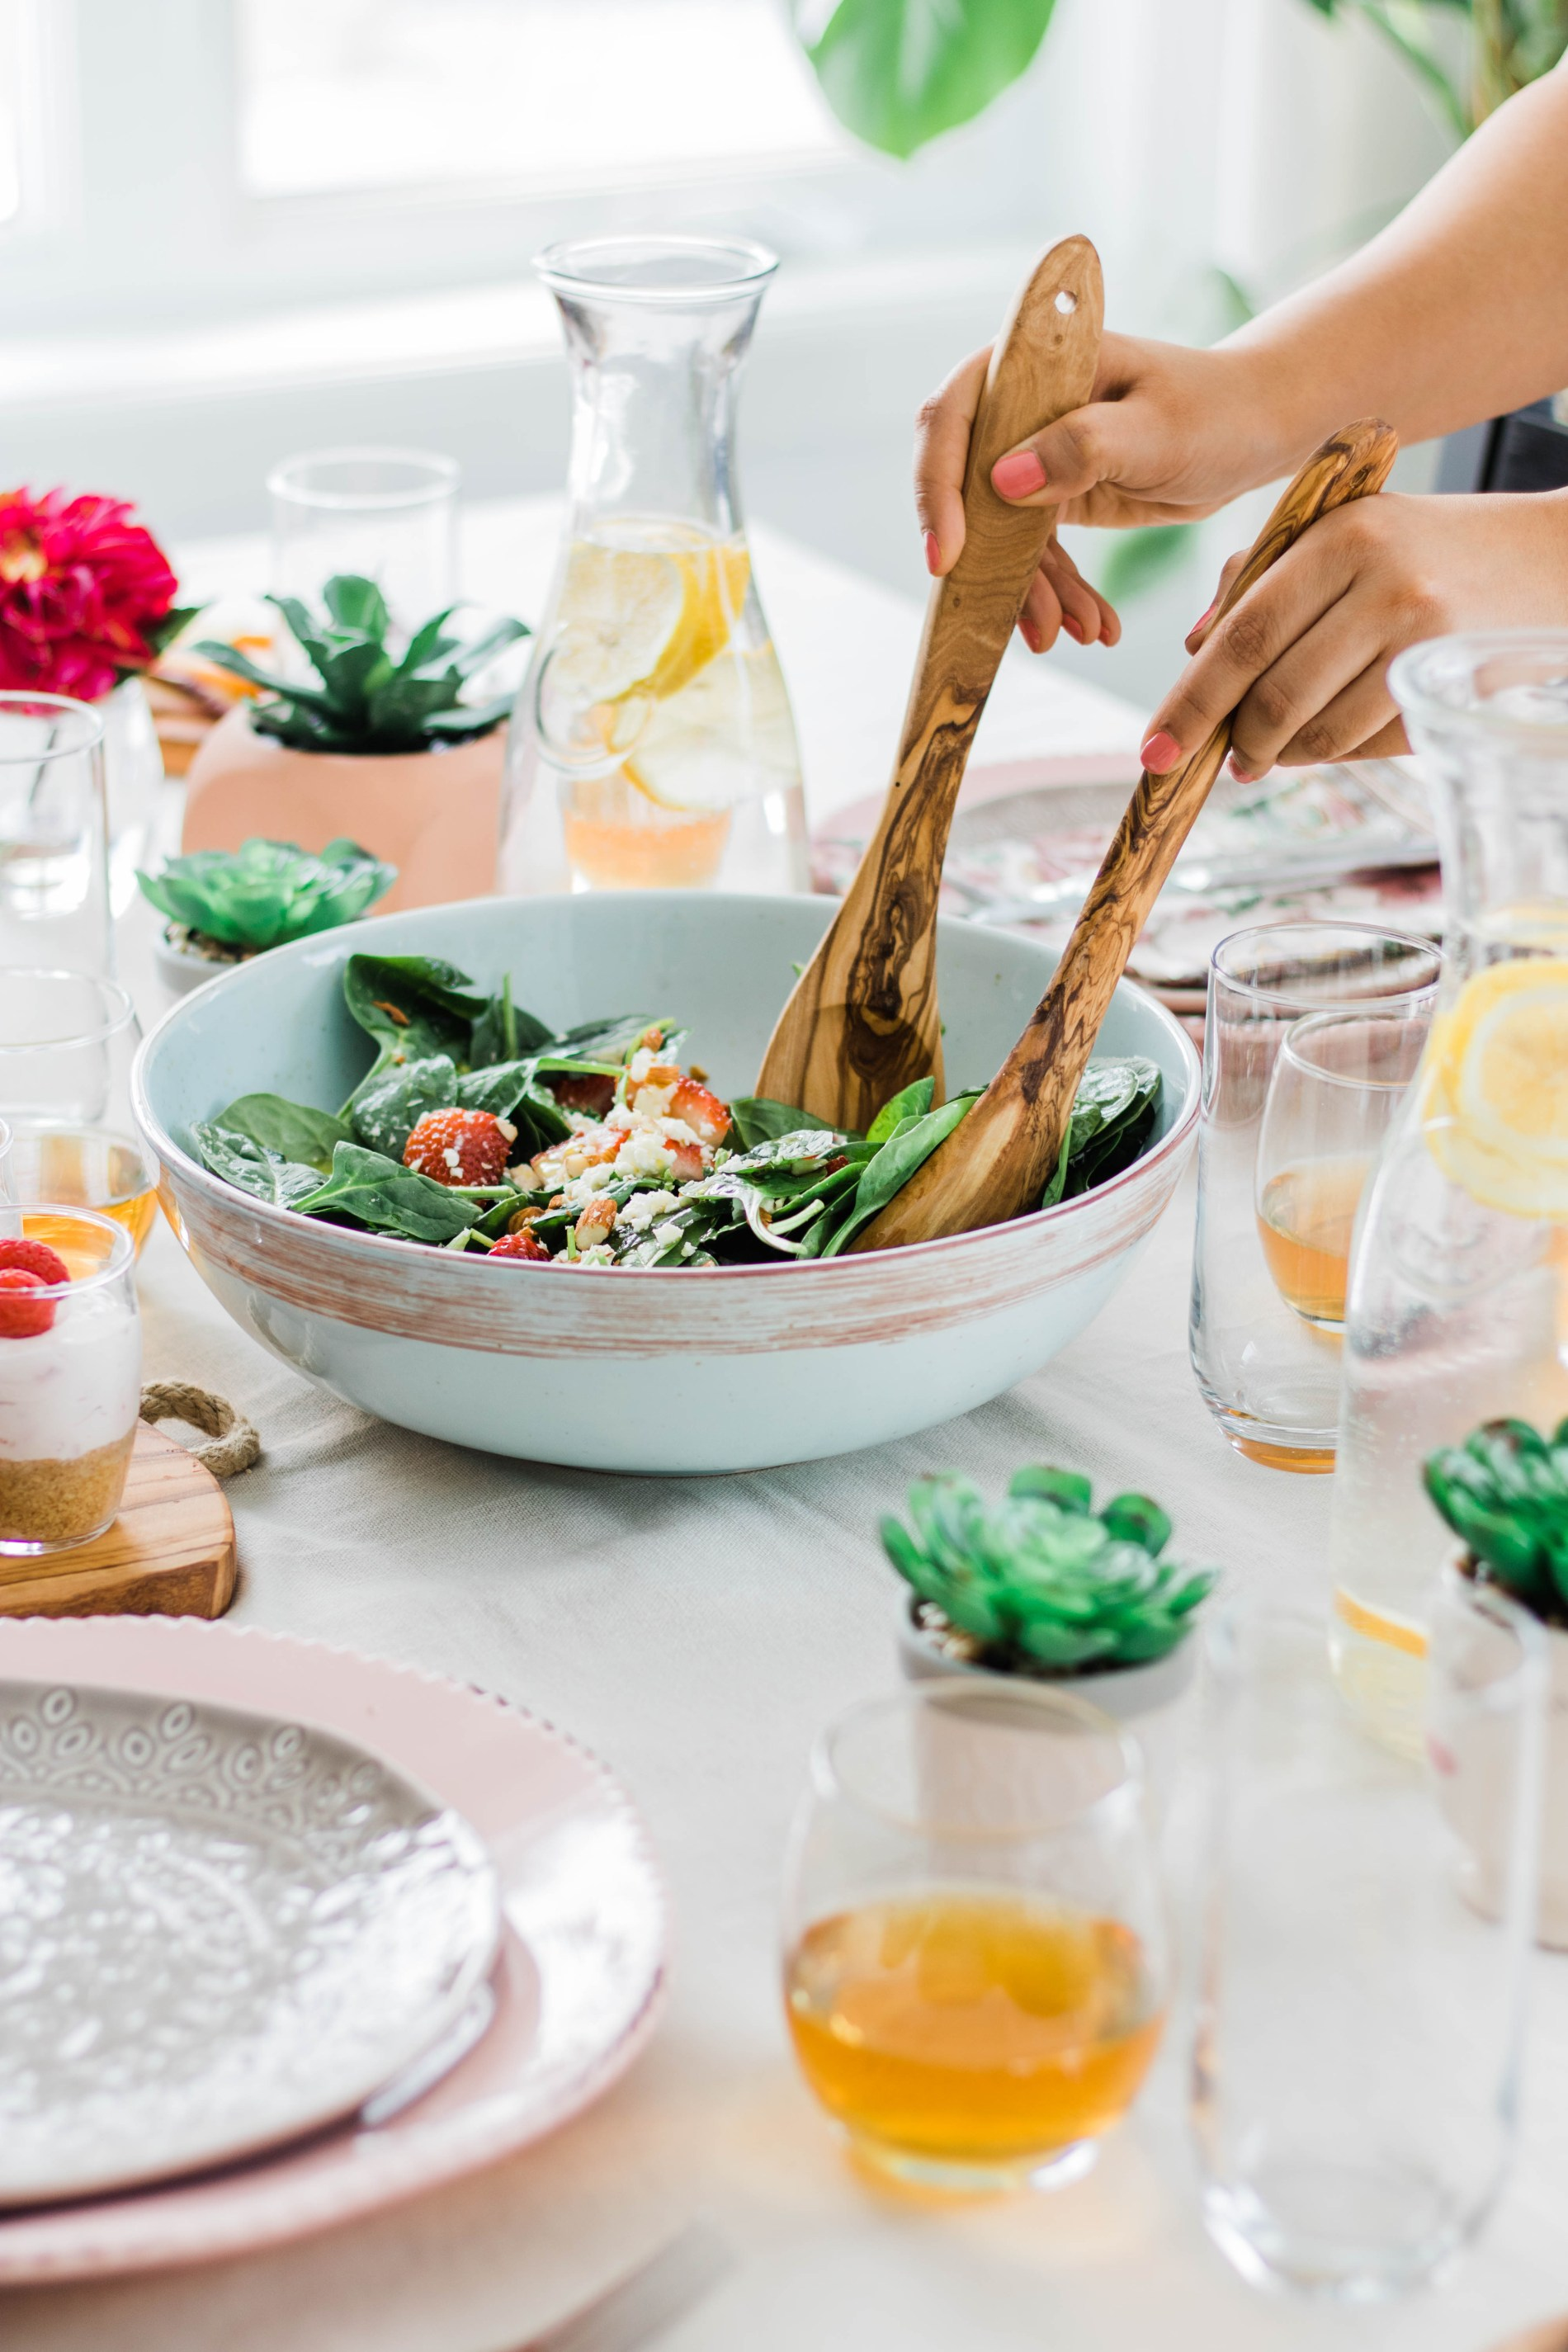 A Dinner Party To Celebrate Spring's Arrival with a full vegetarian menu. #tablescape #dinnerparty #spring #dinner